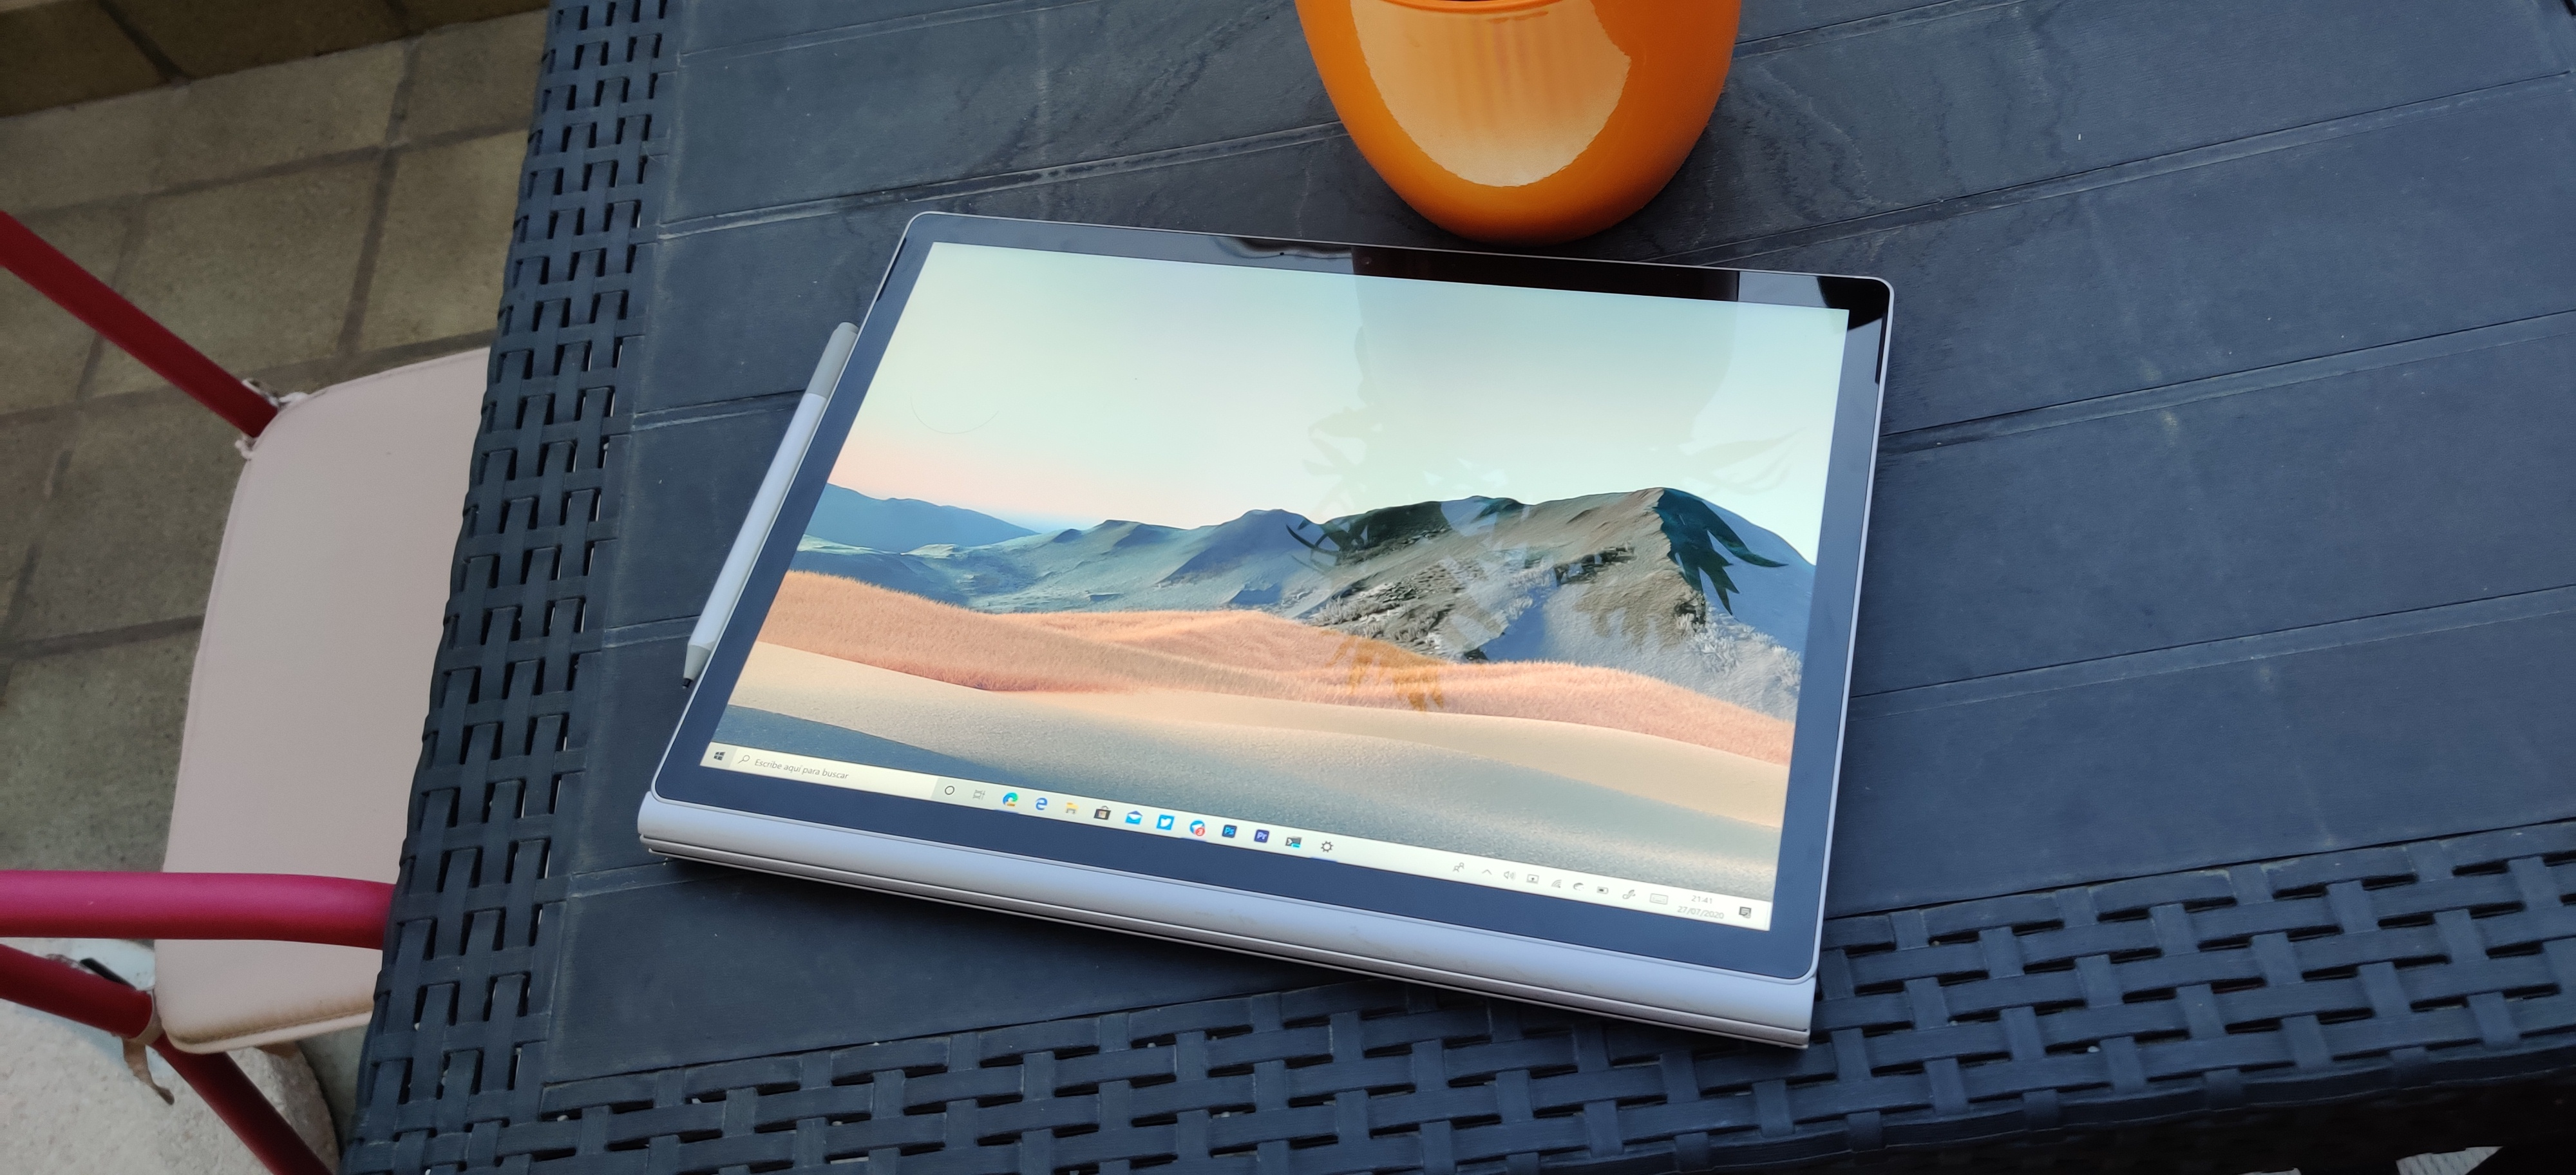 Surface Book 3 modo de uso 3 para dibujar